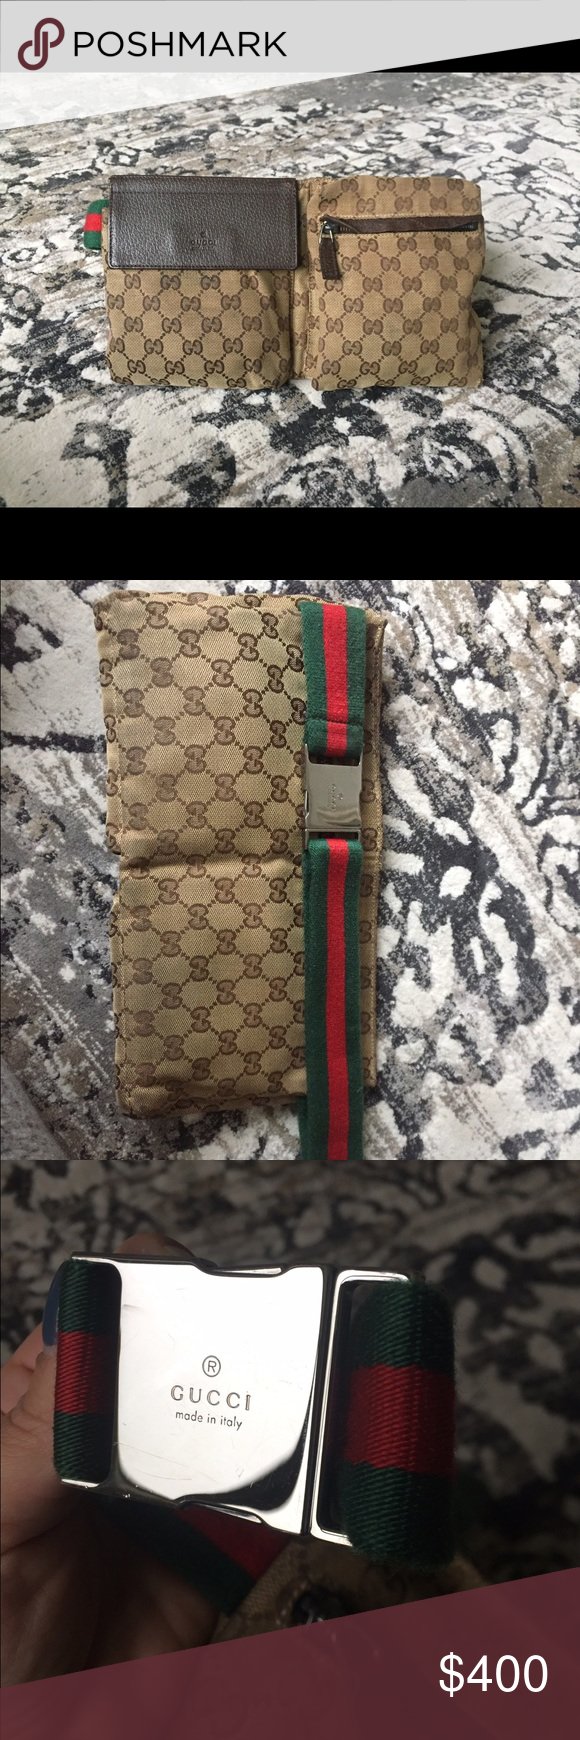 700c92996 Authentic GuccI Original GG Canvas Belt Bag Great condition waist bag. Some  wear from time